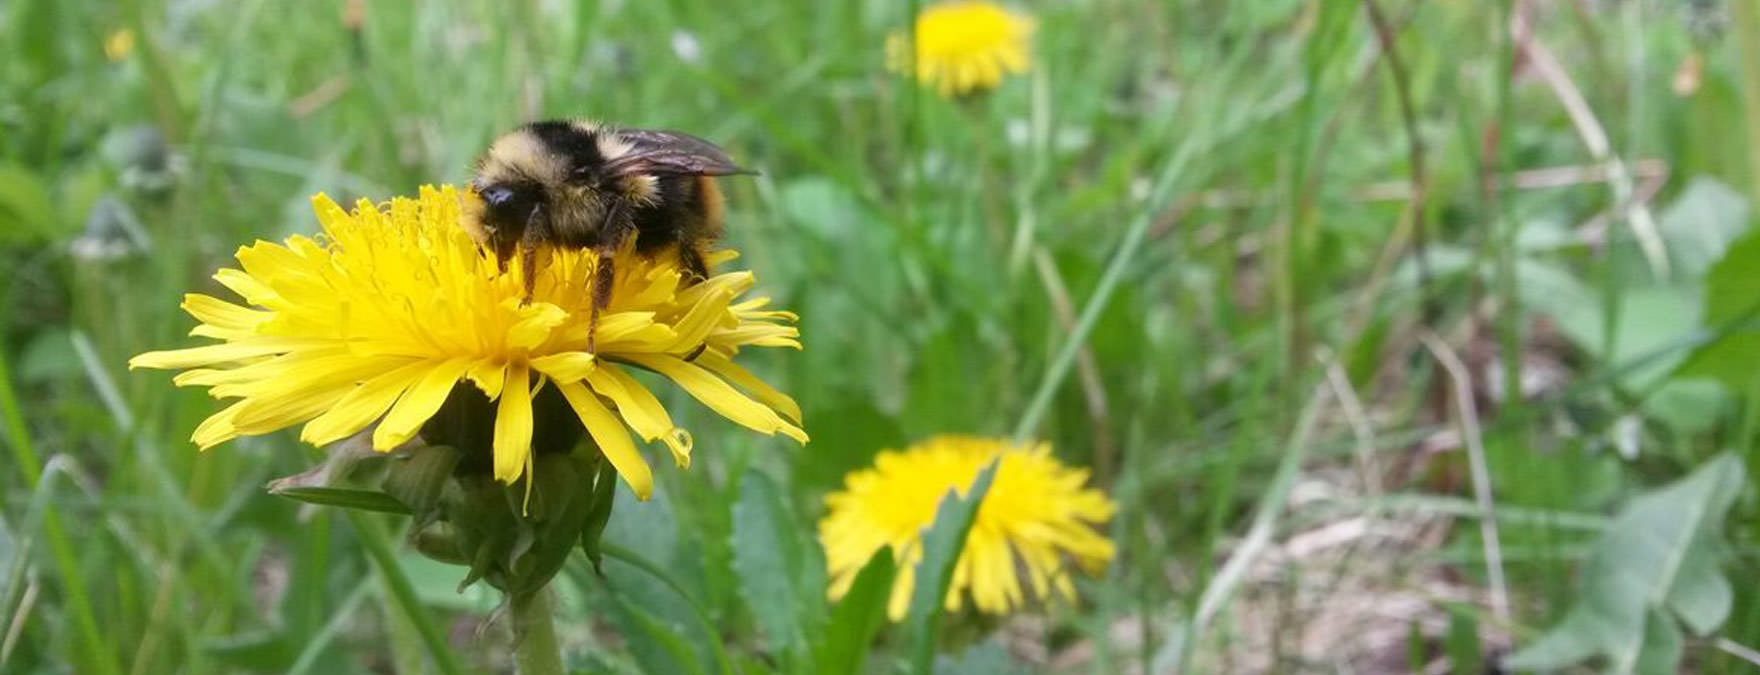 Hives-for-Humanity_Bumblebee_pollinator_wildbees_THINKblog_resize